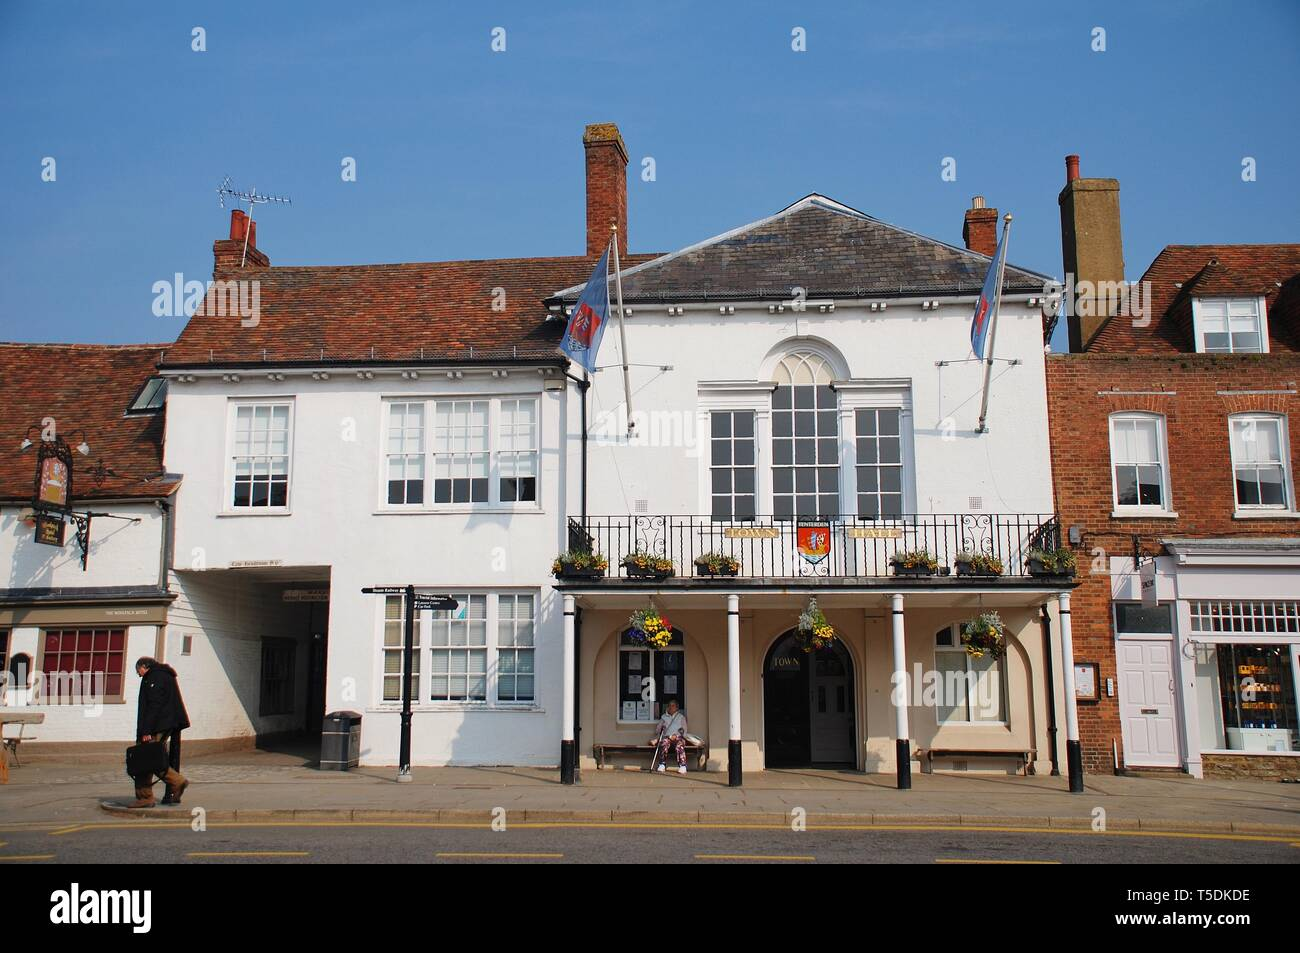 The Town Hall at Tenterden in Kent, England on April 17, 2019. The building dates from 1790. The Woolpack pub and hotel stands next door. - Stock Image